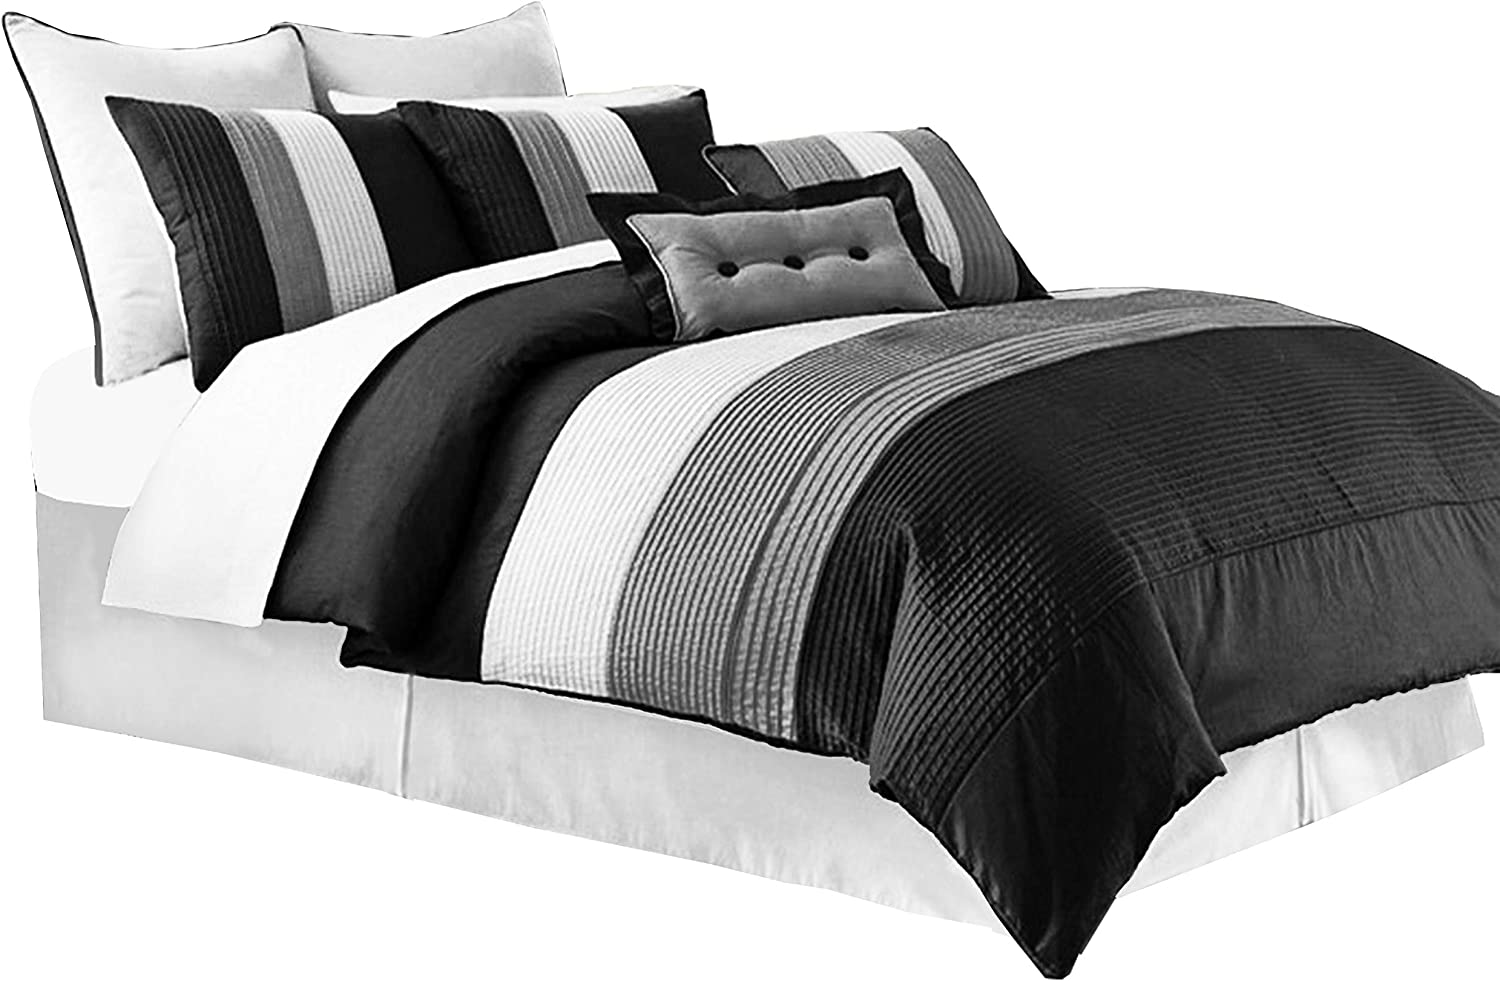 Chezmoi Collection 90 x 92-Inch 8-Piece Luxury Stripe Comforter Bed-in-a-Bag Set, Black/White/Grey, Queen